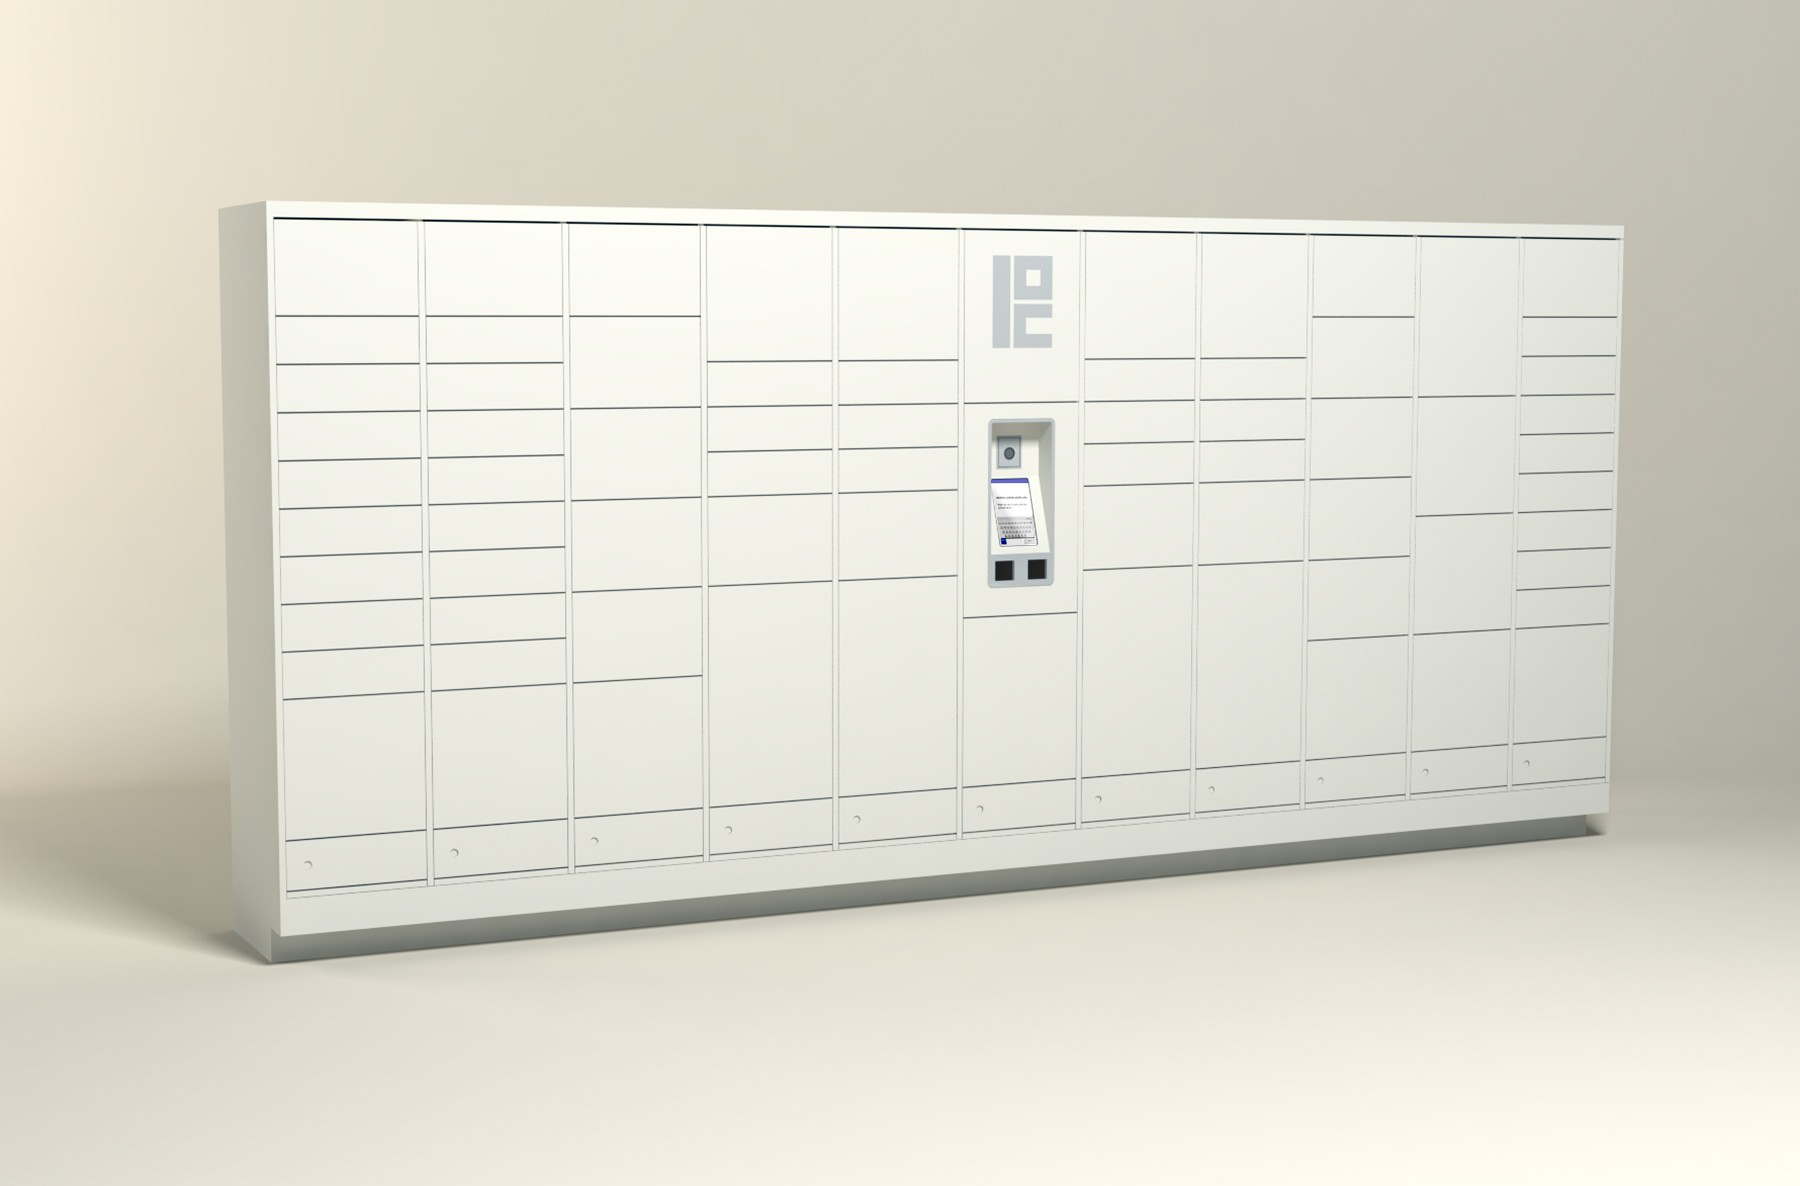 250 Unit - 72 Total Openings - Steel Smart Locker